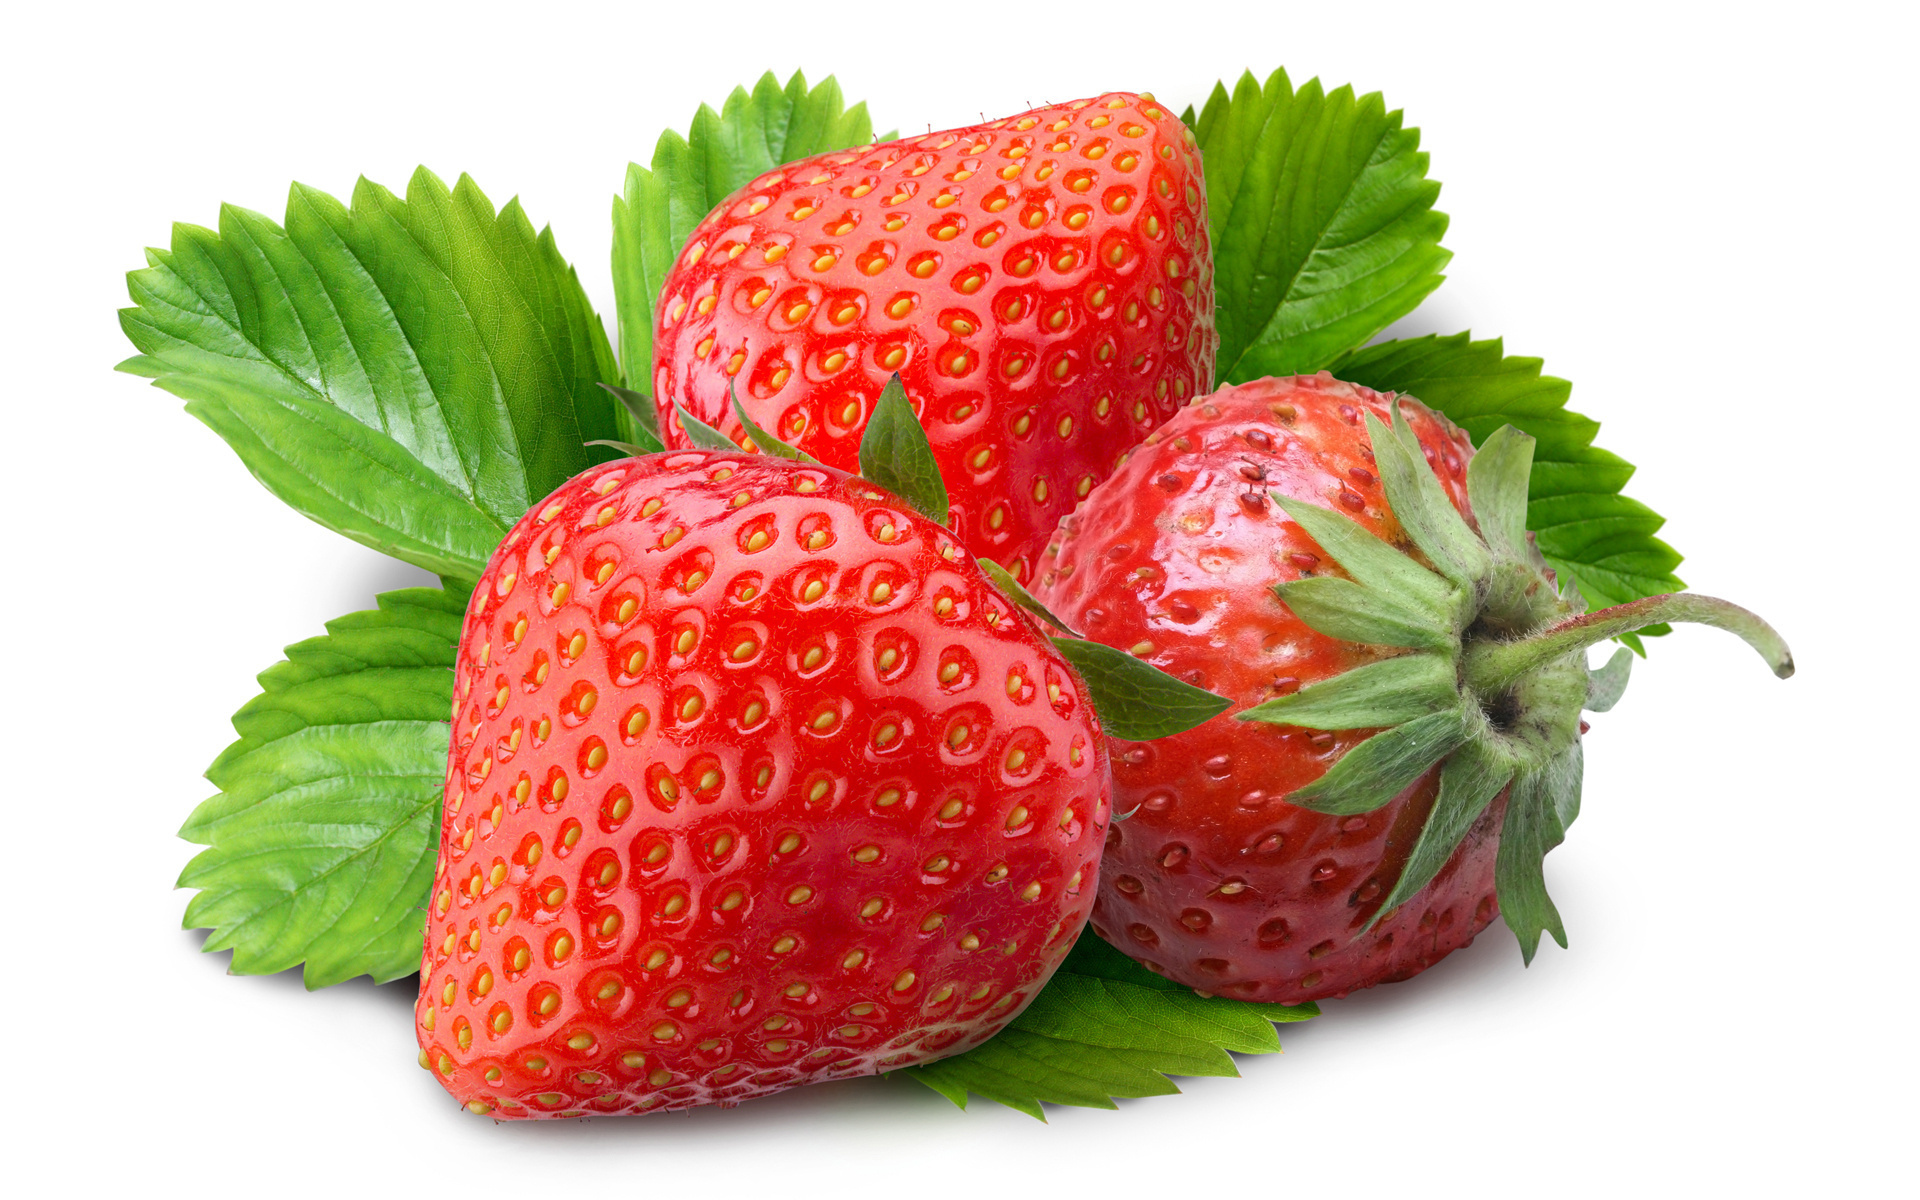 Food - Strawberry Wallpaper - Strawberry HD PNG